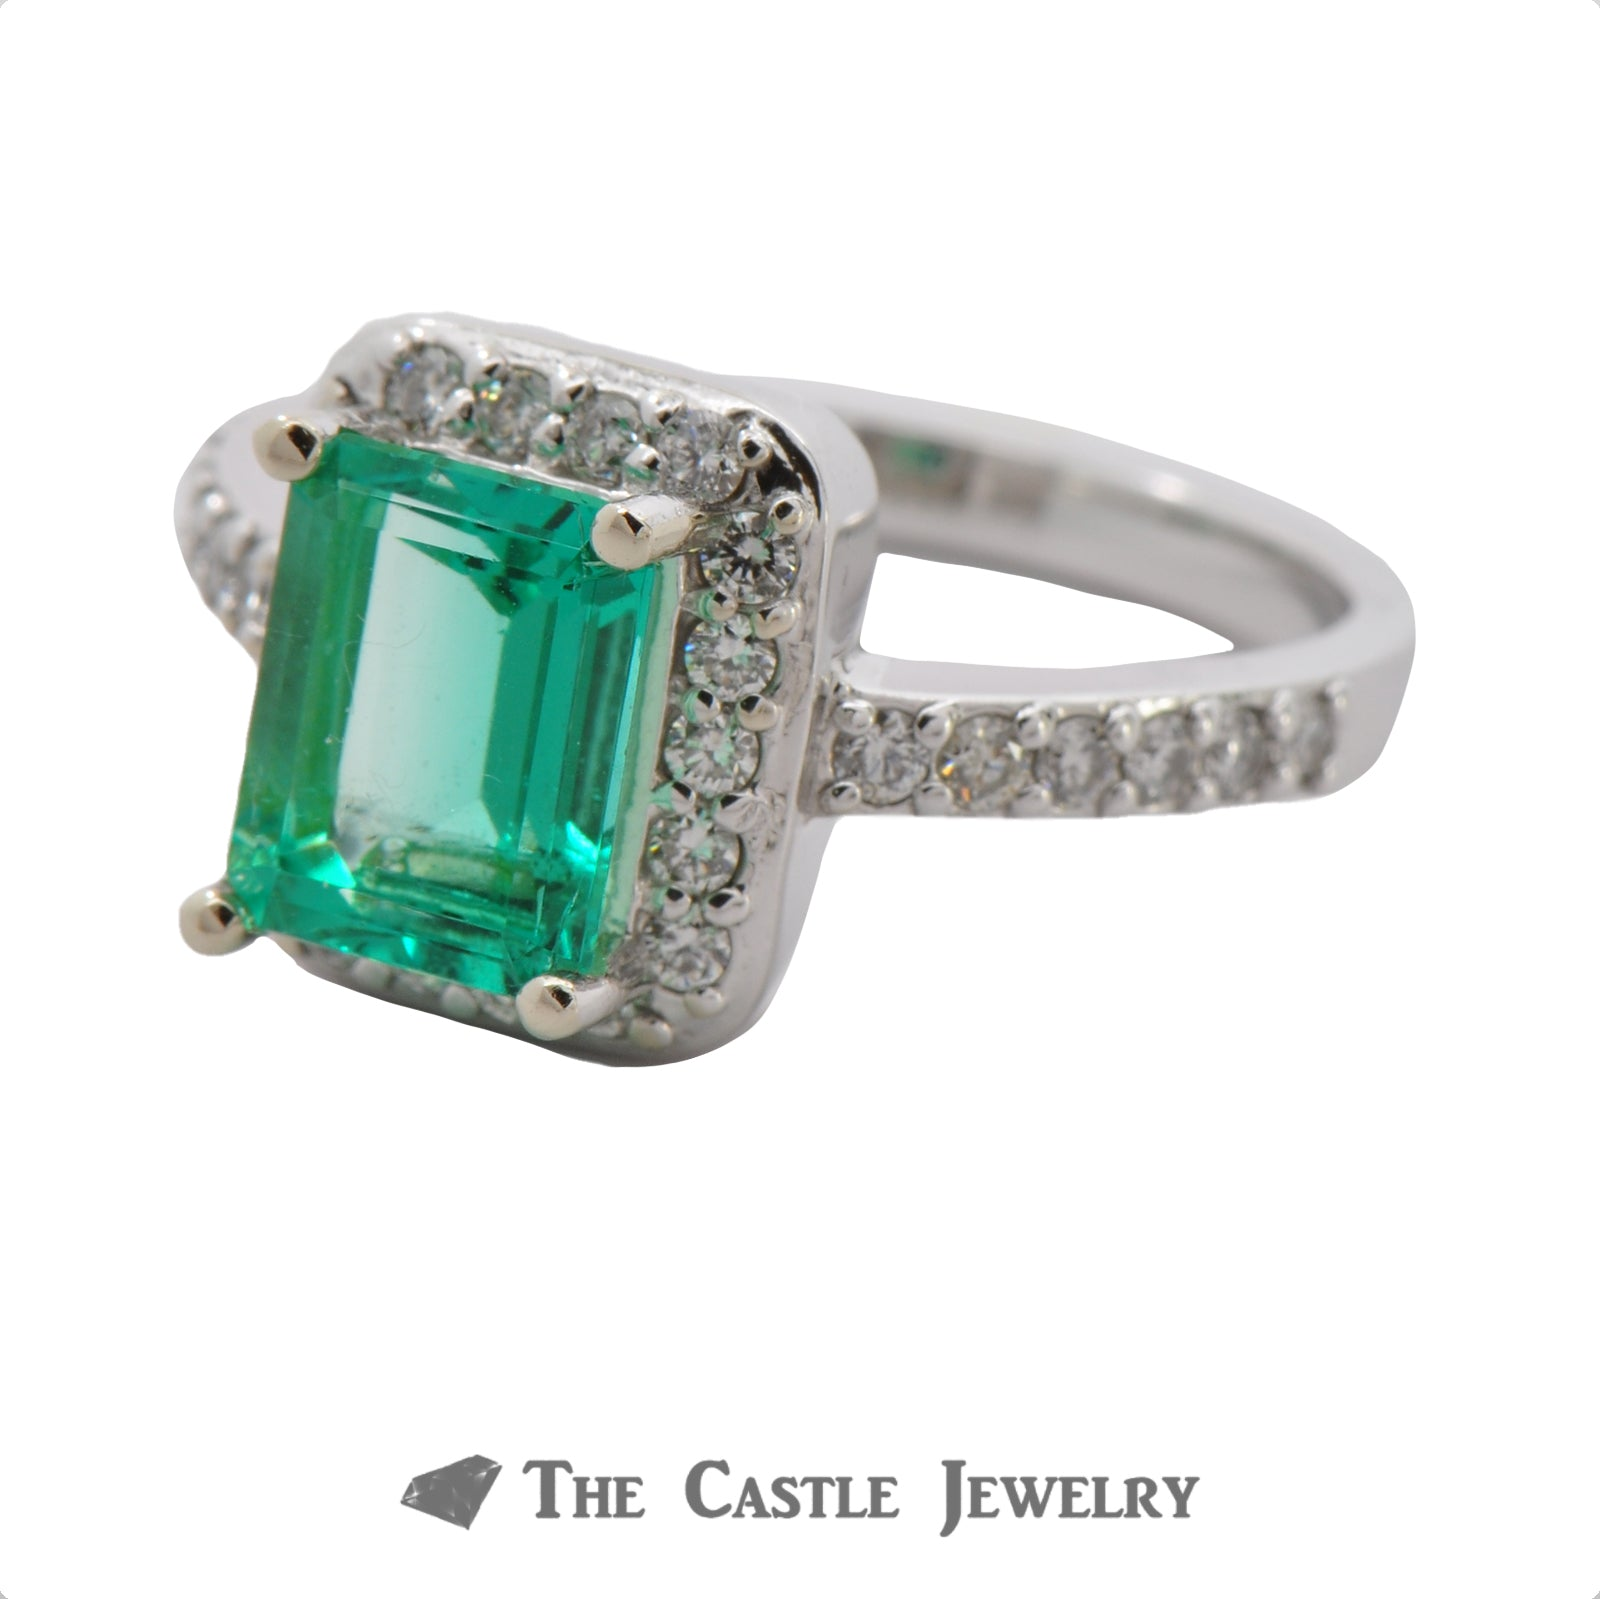 Stunning Emerald Cut Emerald with a Diamond Halo in 14K White Gold-2